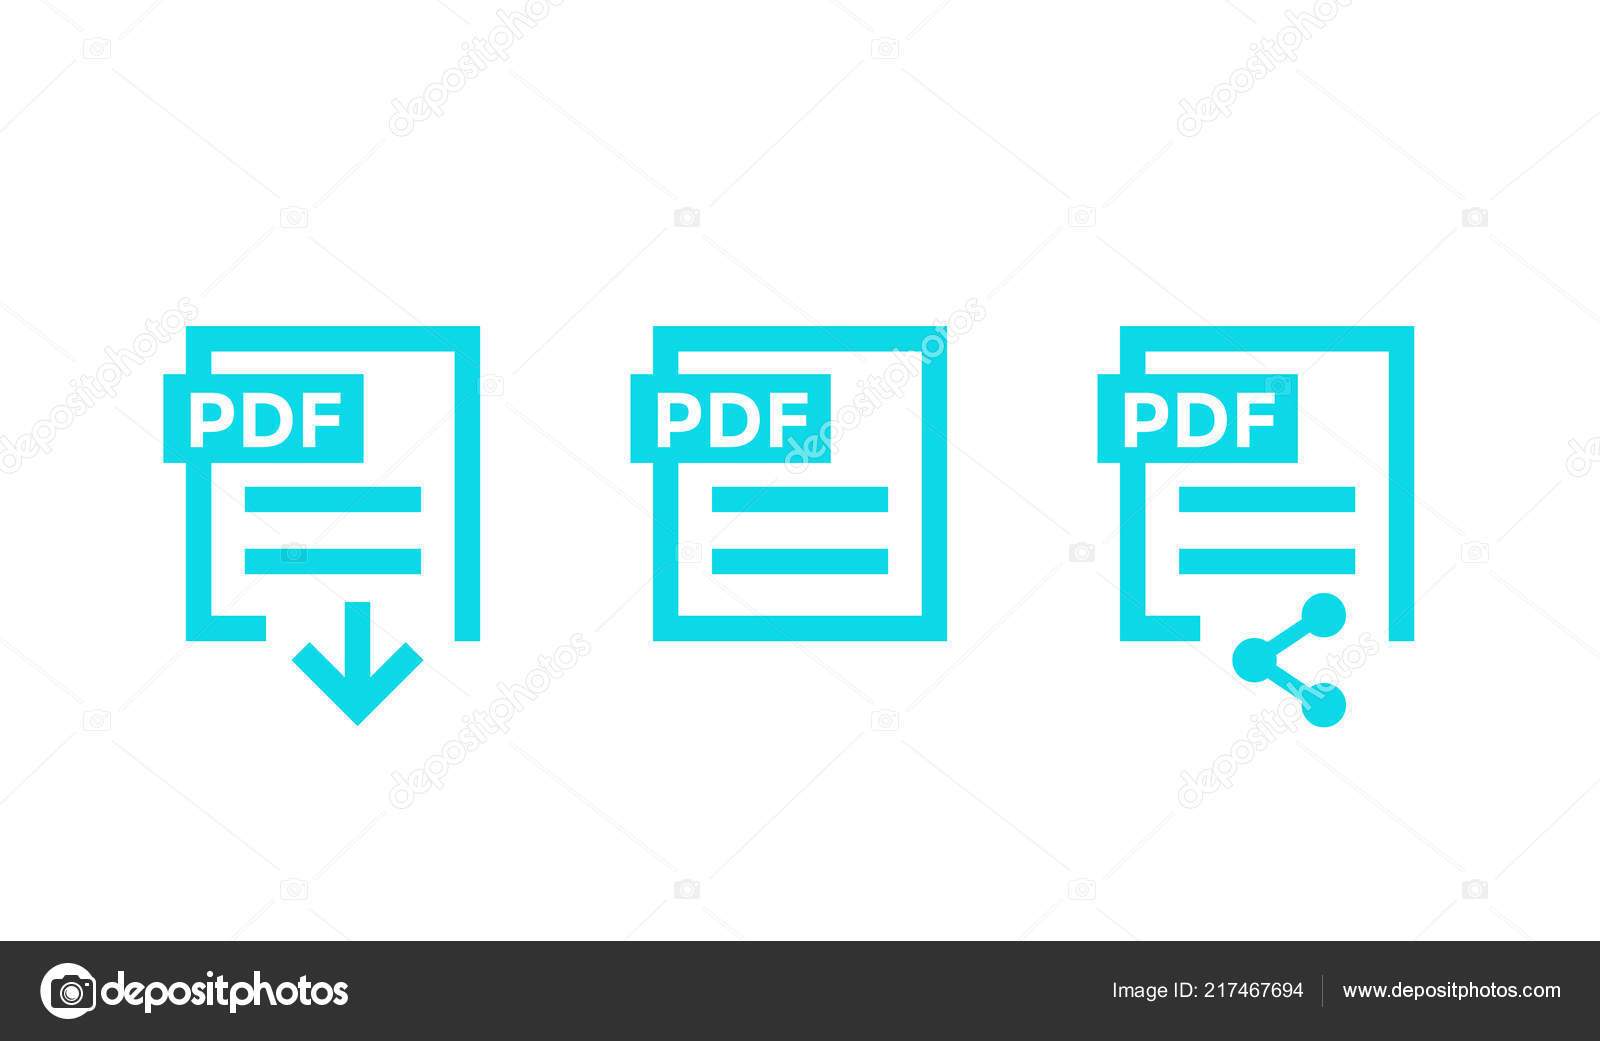 Pdf file download icon, vector illustration royalty free cliparts.